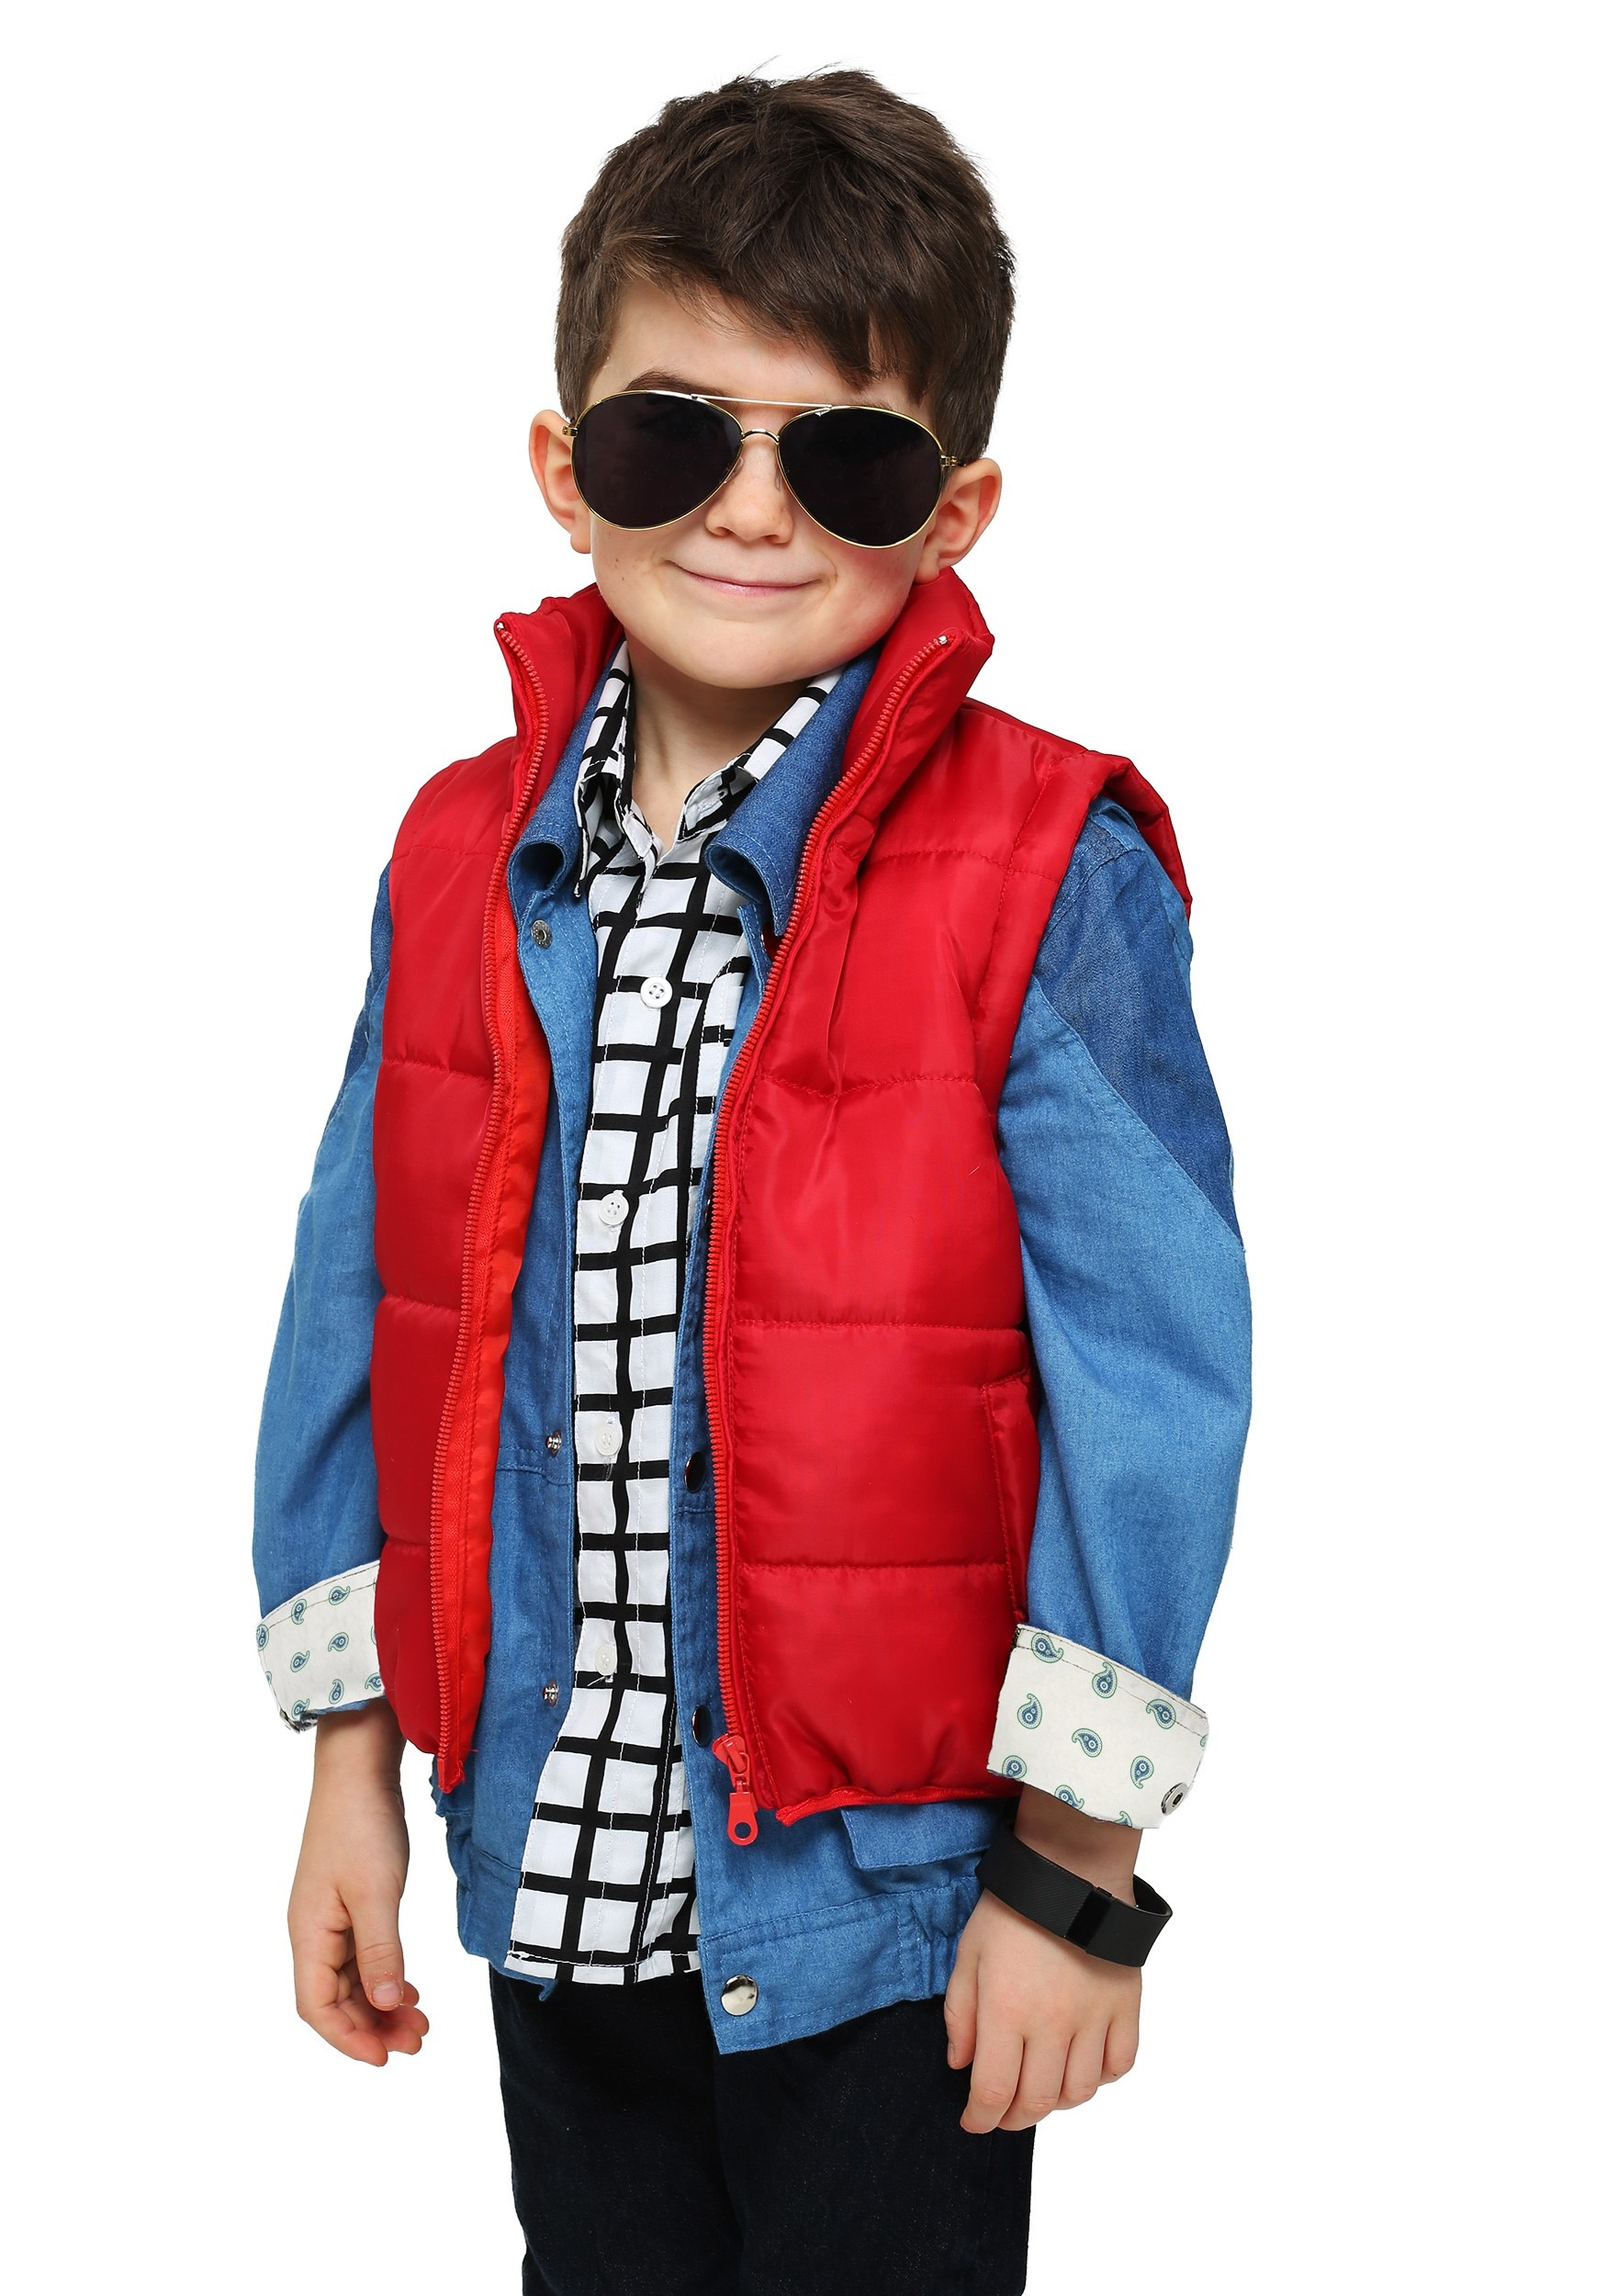 Toddler_Marty_McFly_Vest_Costume